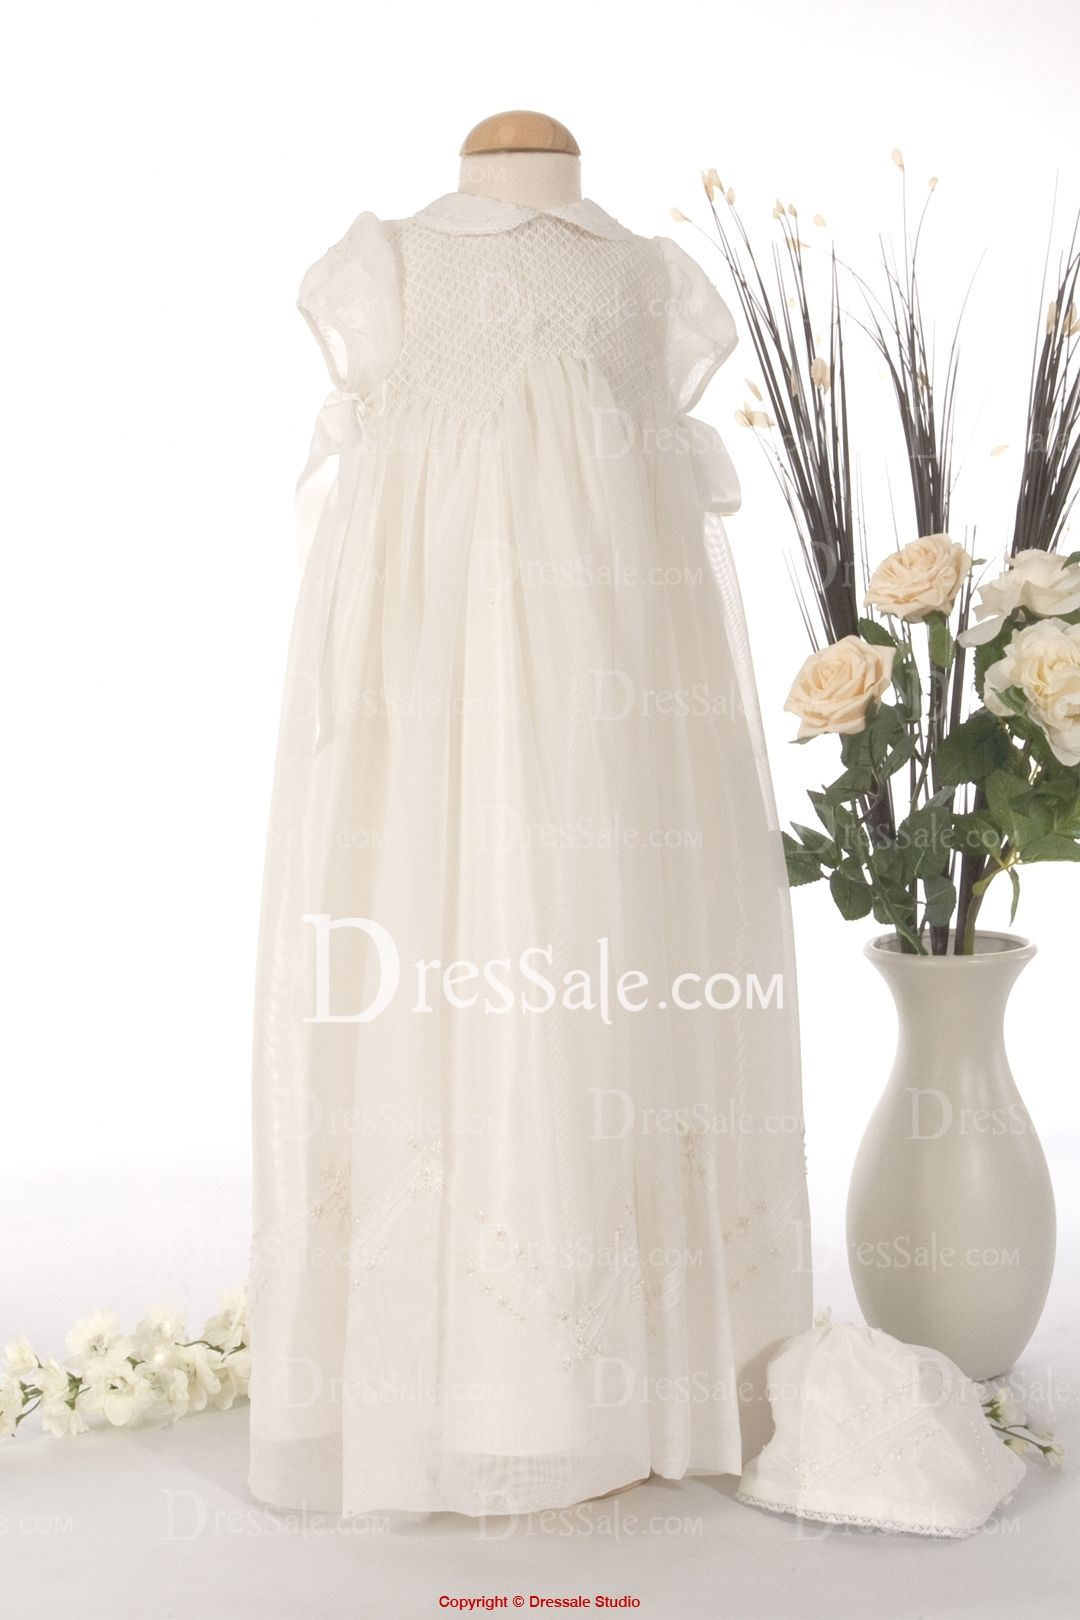 Organza Flower Girl Dress with Short Sleeves